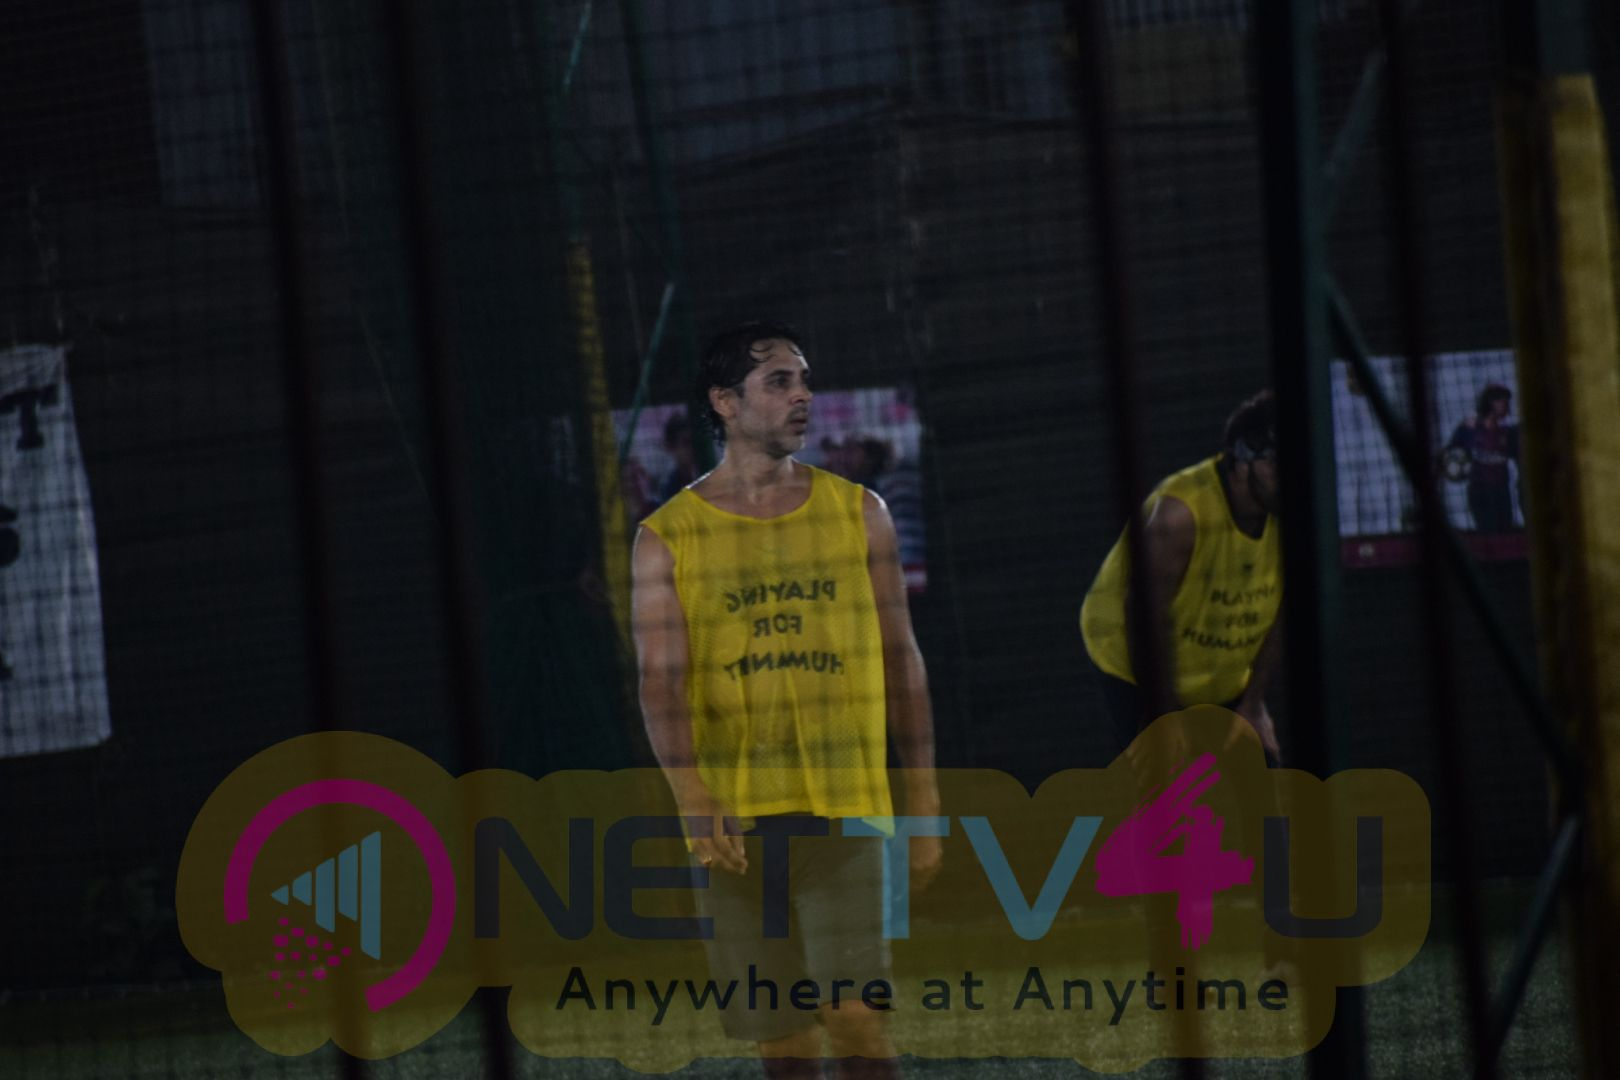 15 04 2018 Ranbir Kapoor Playing Football Match At Juhu In Mumbai - Photos